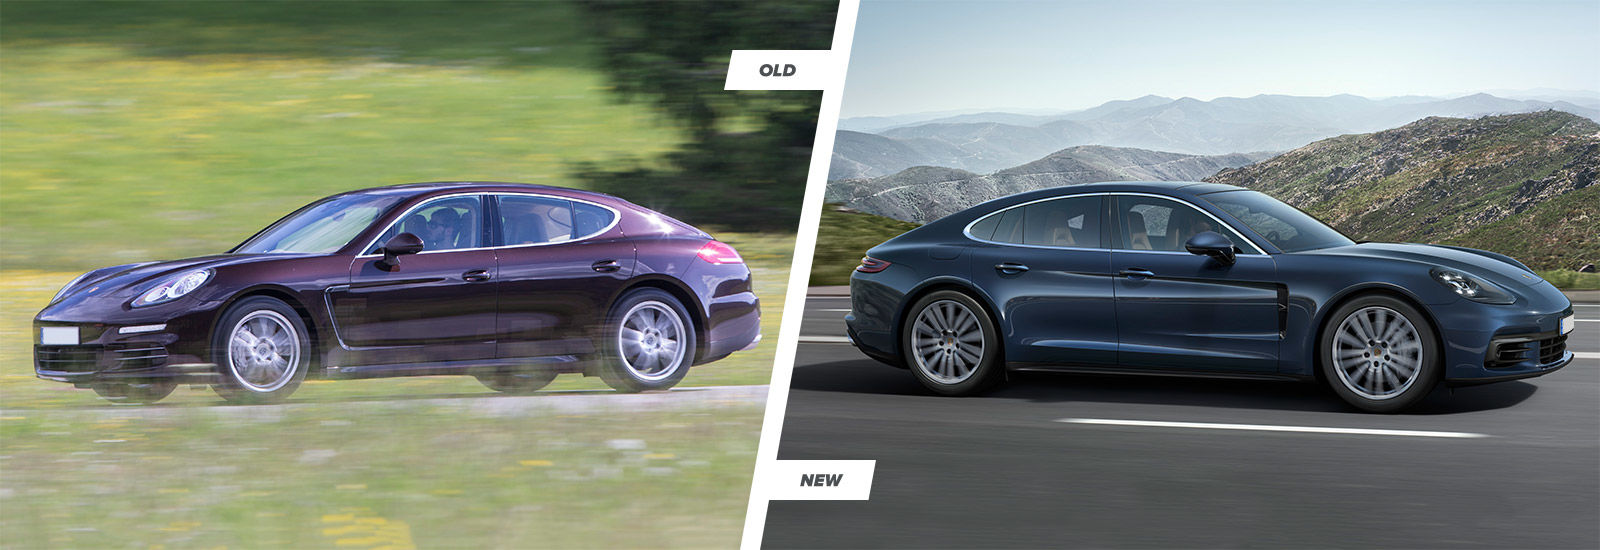 The Sharpest Rides >> 2017 Porsche Panamera: old vs new compared | carwow